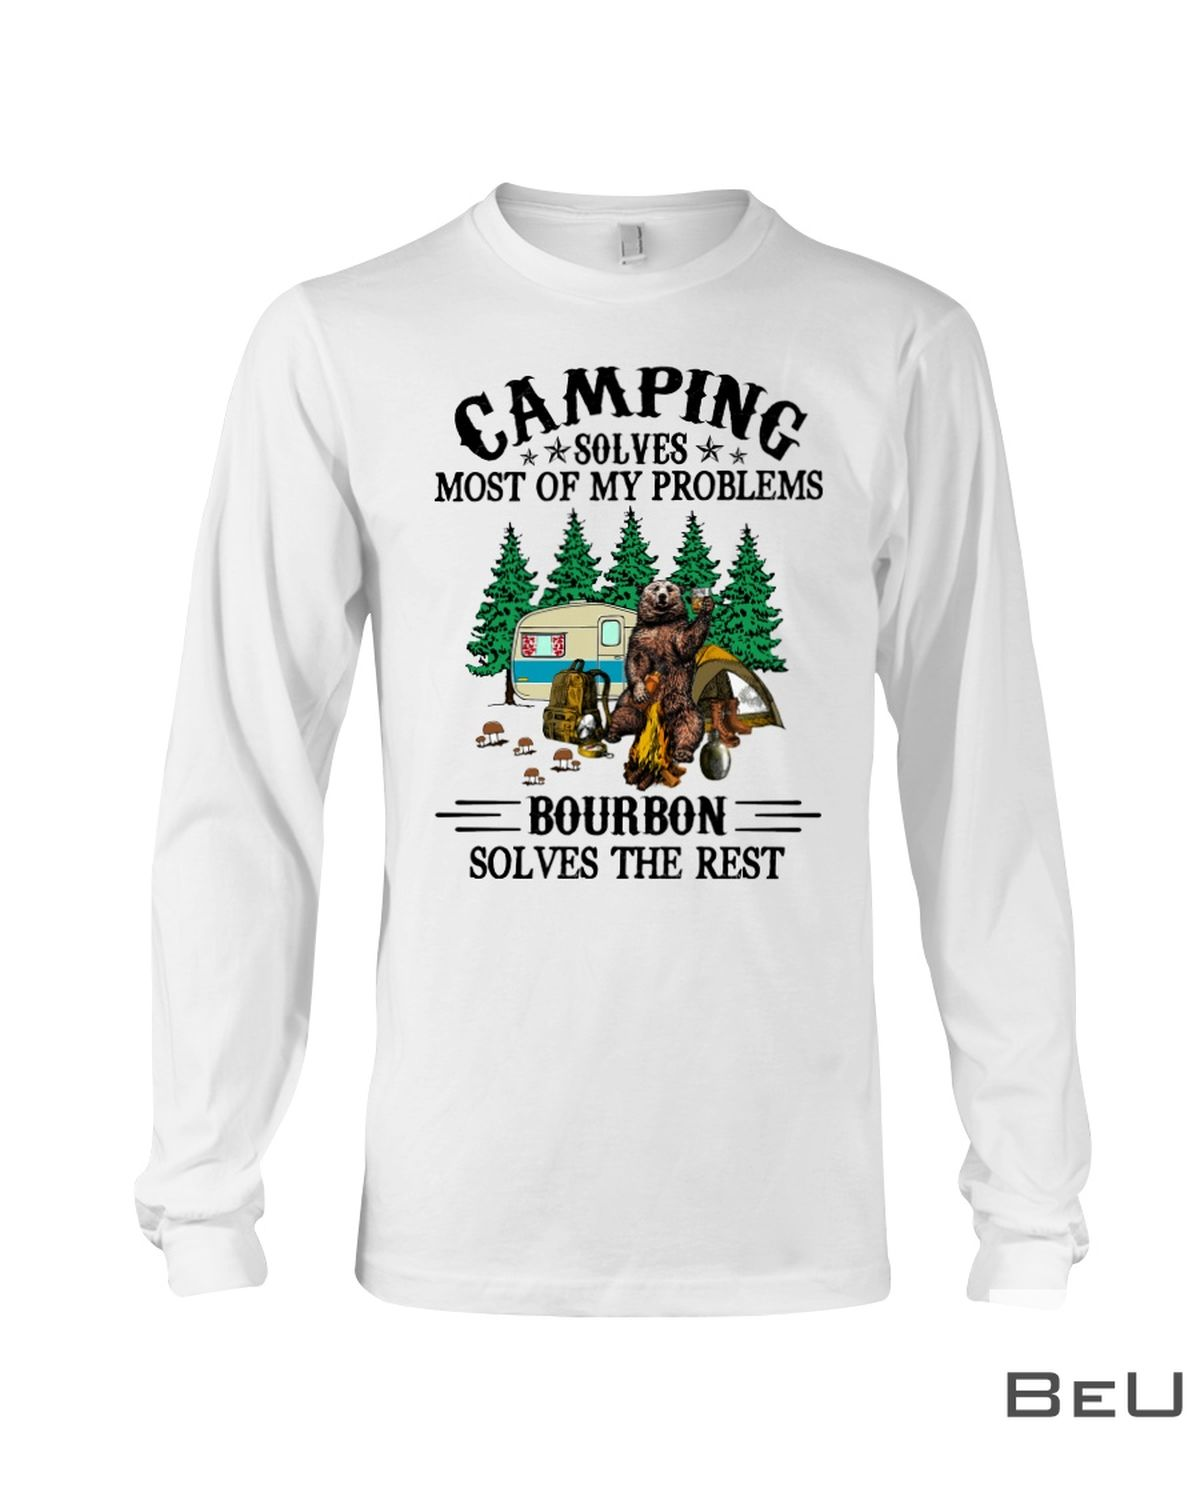 Camping Solves Most Of My Problems - Bourbon Solves The Rest Shirtc